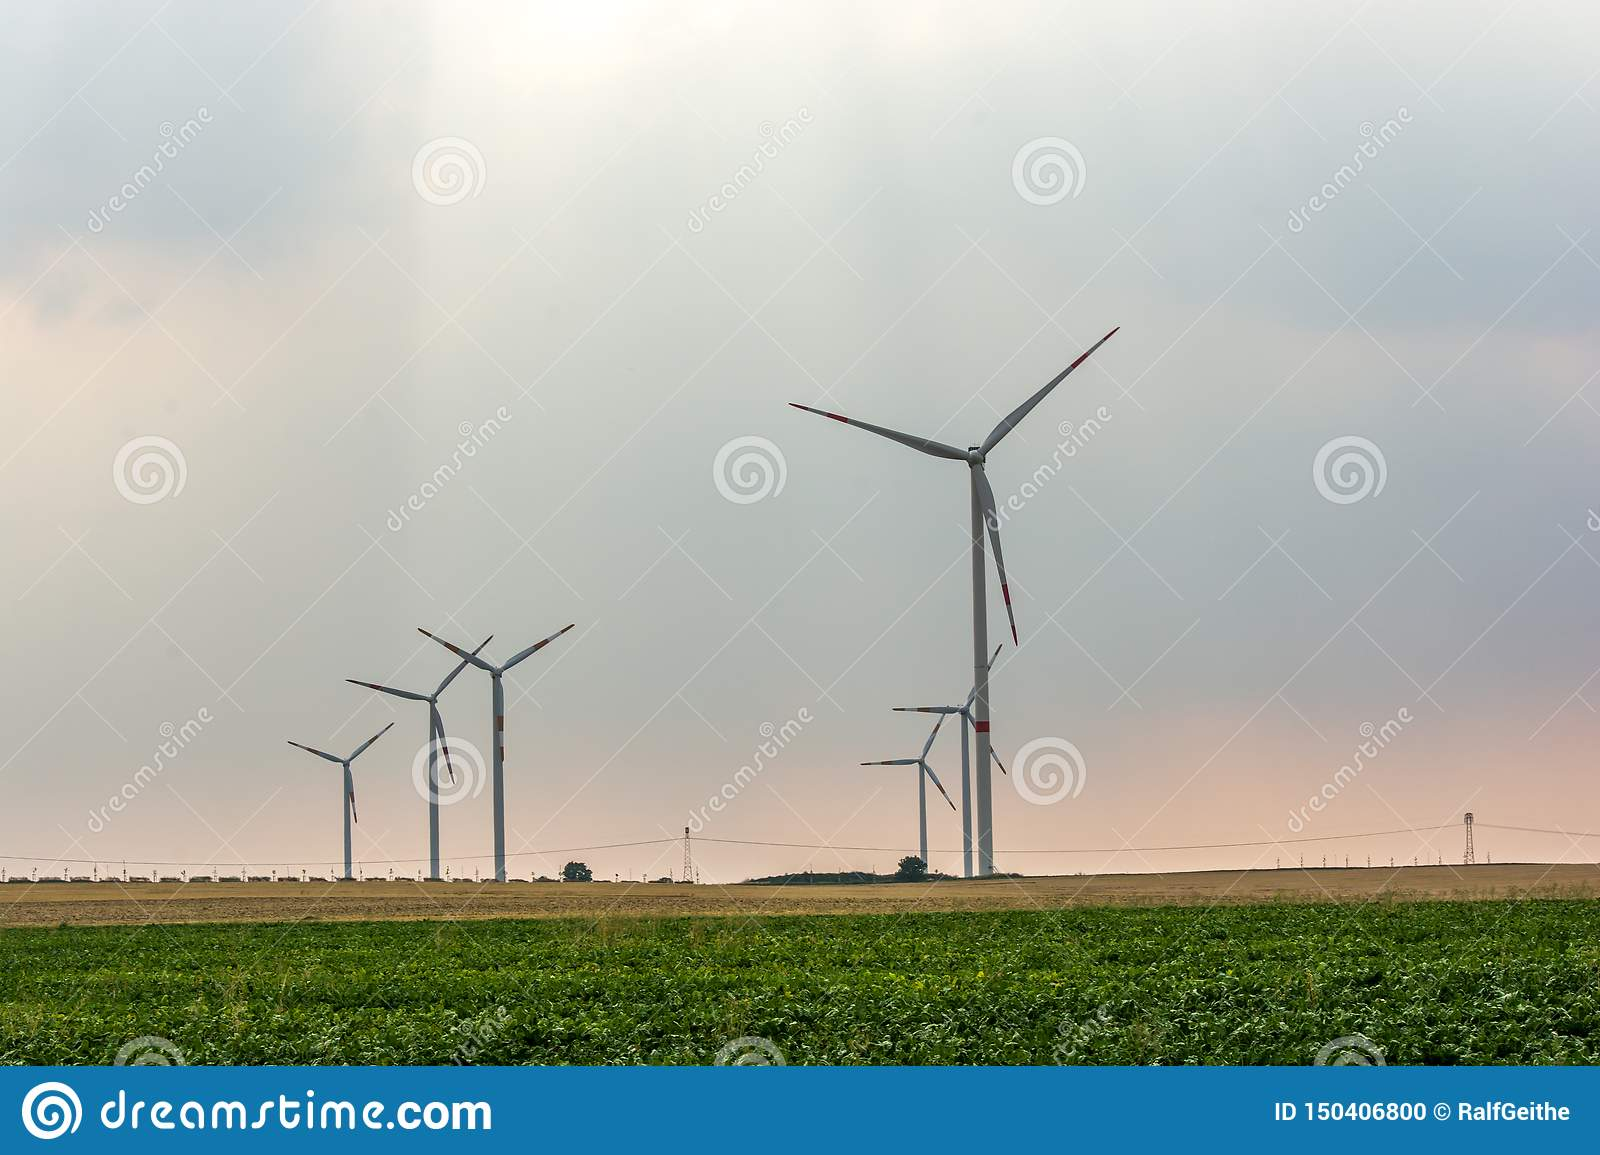 Wind farm on a field in the evening sun